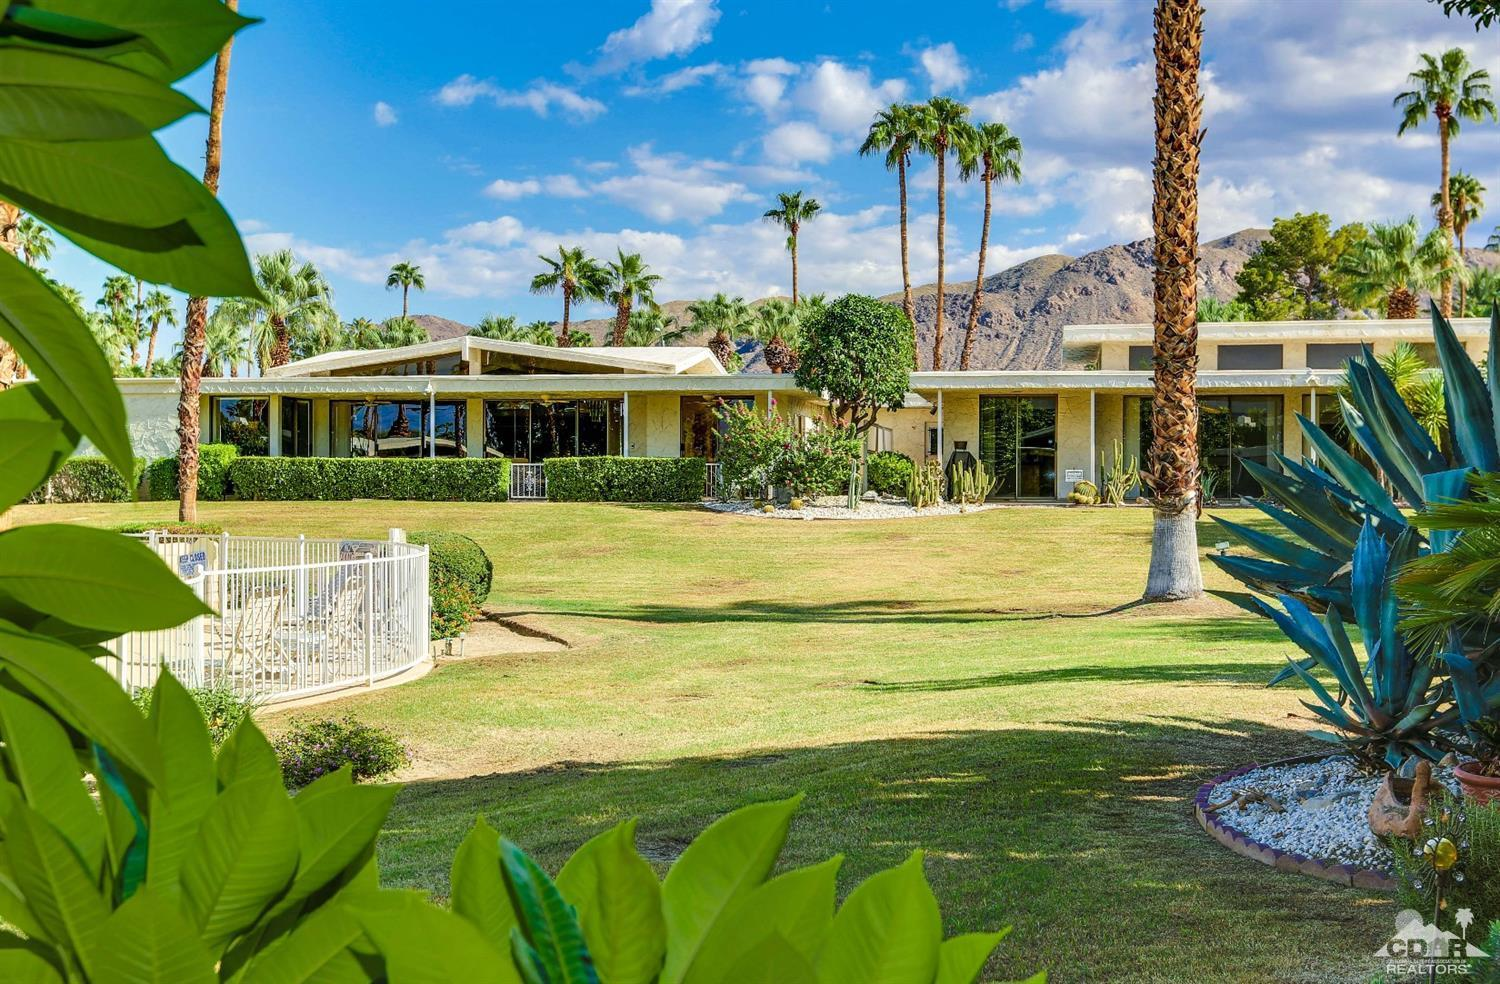 Canyon vista estates condo community in palm springs for Palm springs homes rentals